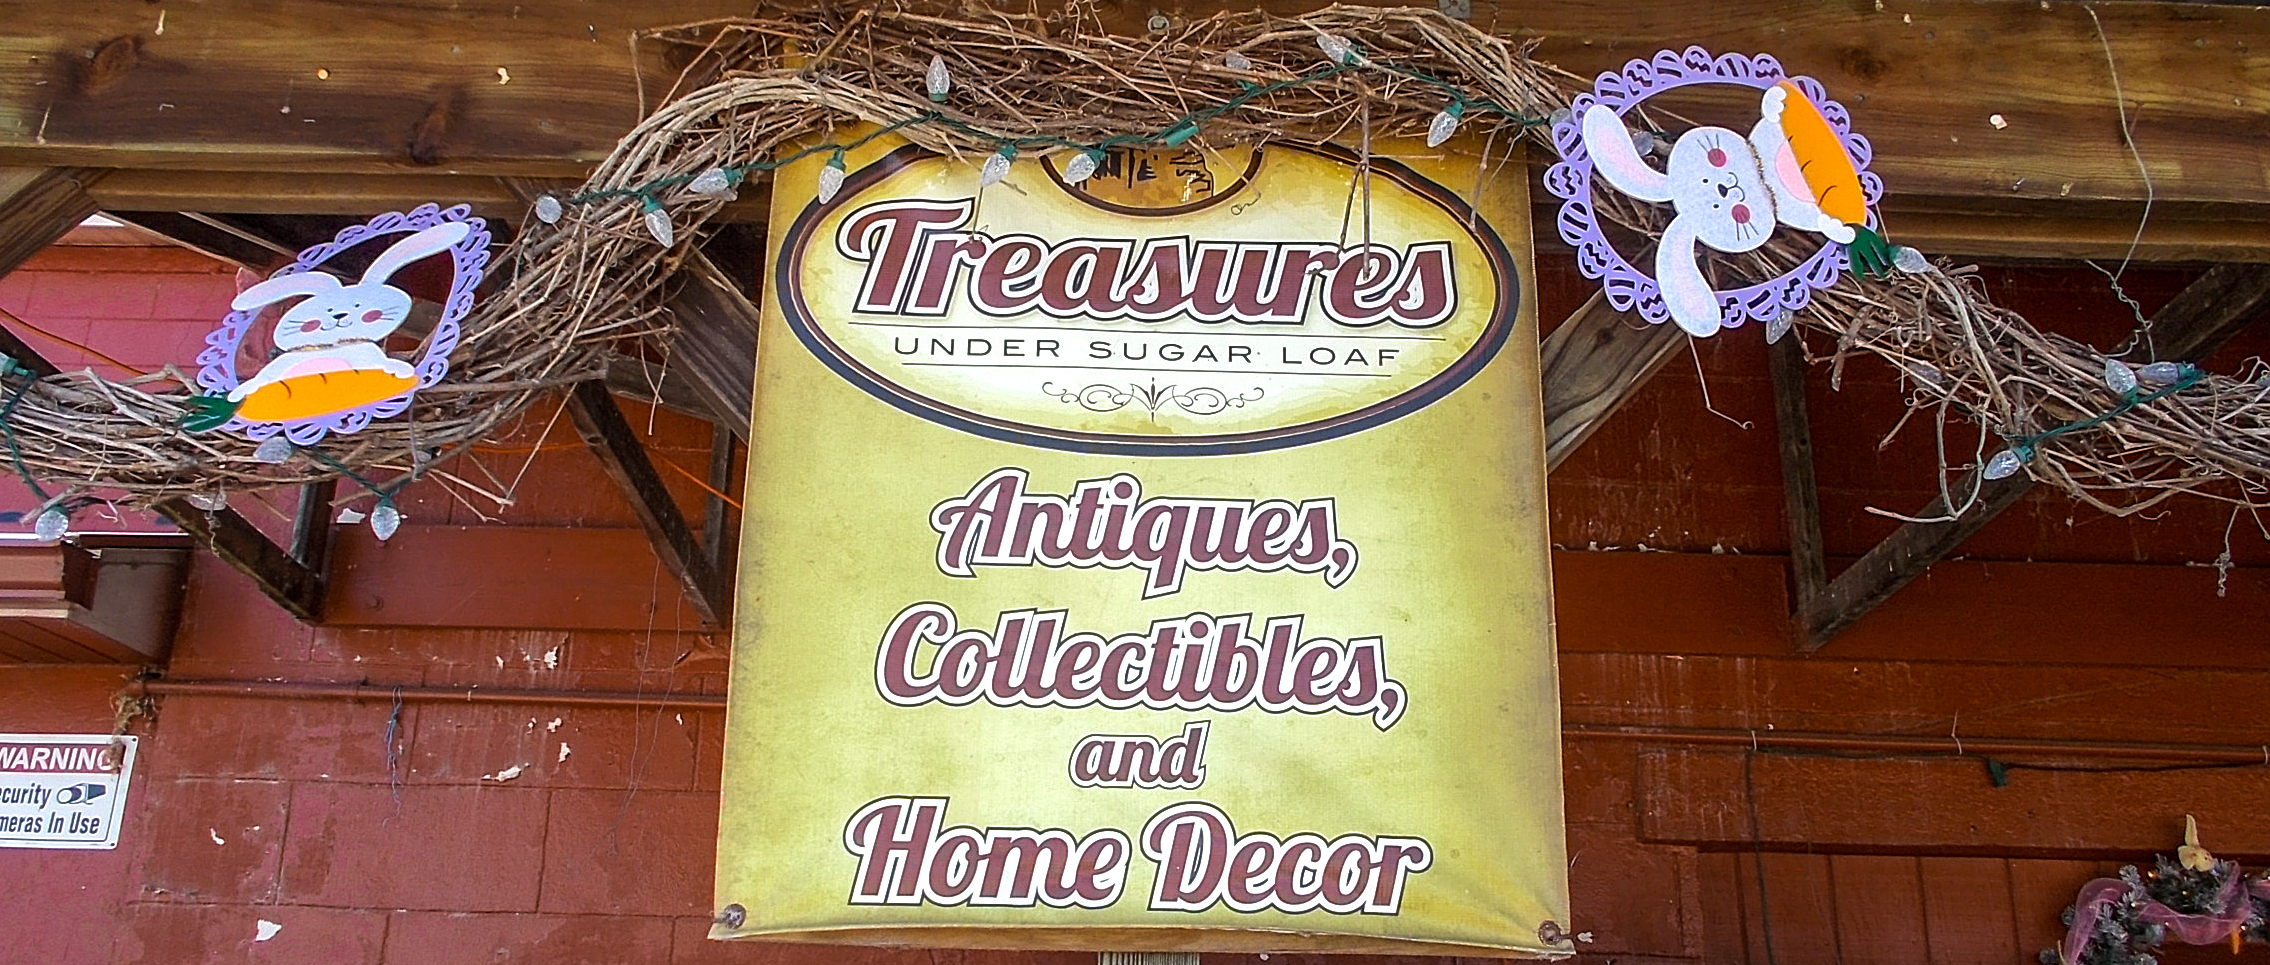 banner-treasures-front-easter-treasures-under-sugar-loaf-winona-minnesota-antiques-collectibles-crafts